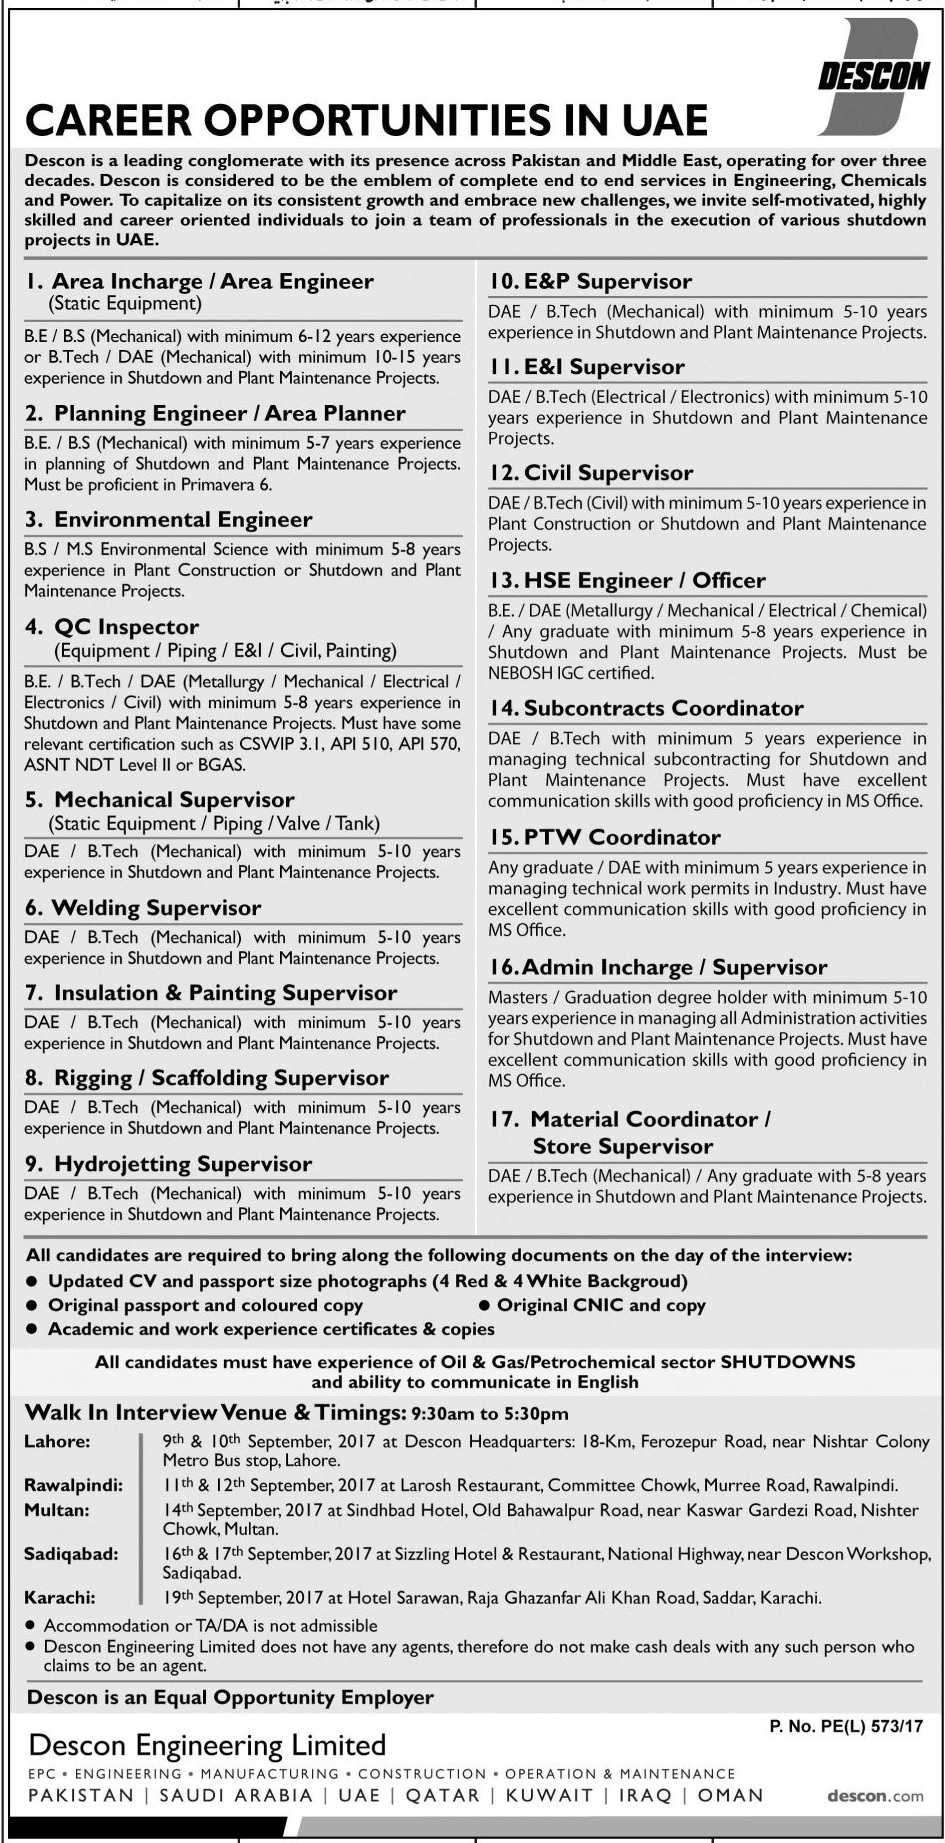 DESCON Jobs In Lahore 2017 Last Date, Eligibility, Administrator, Supervisor, Officer